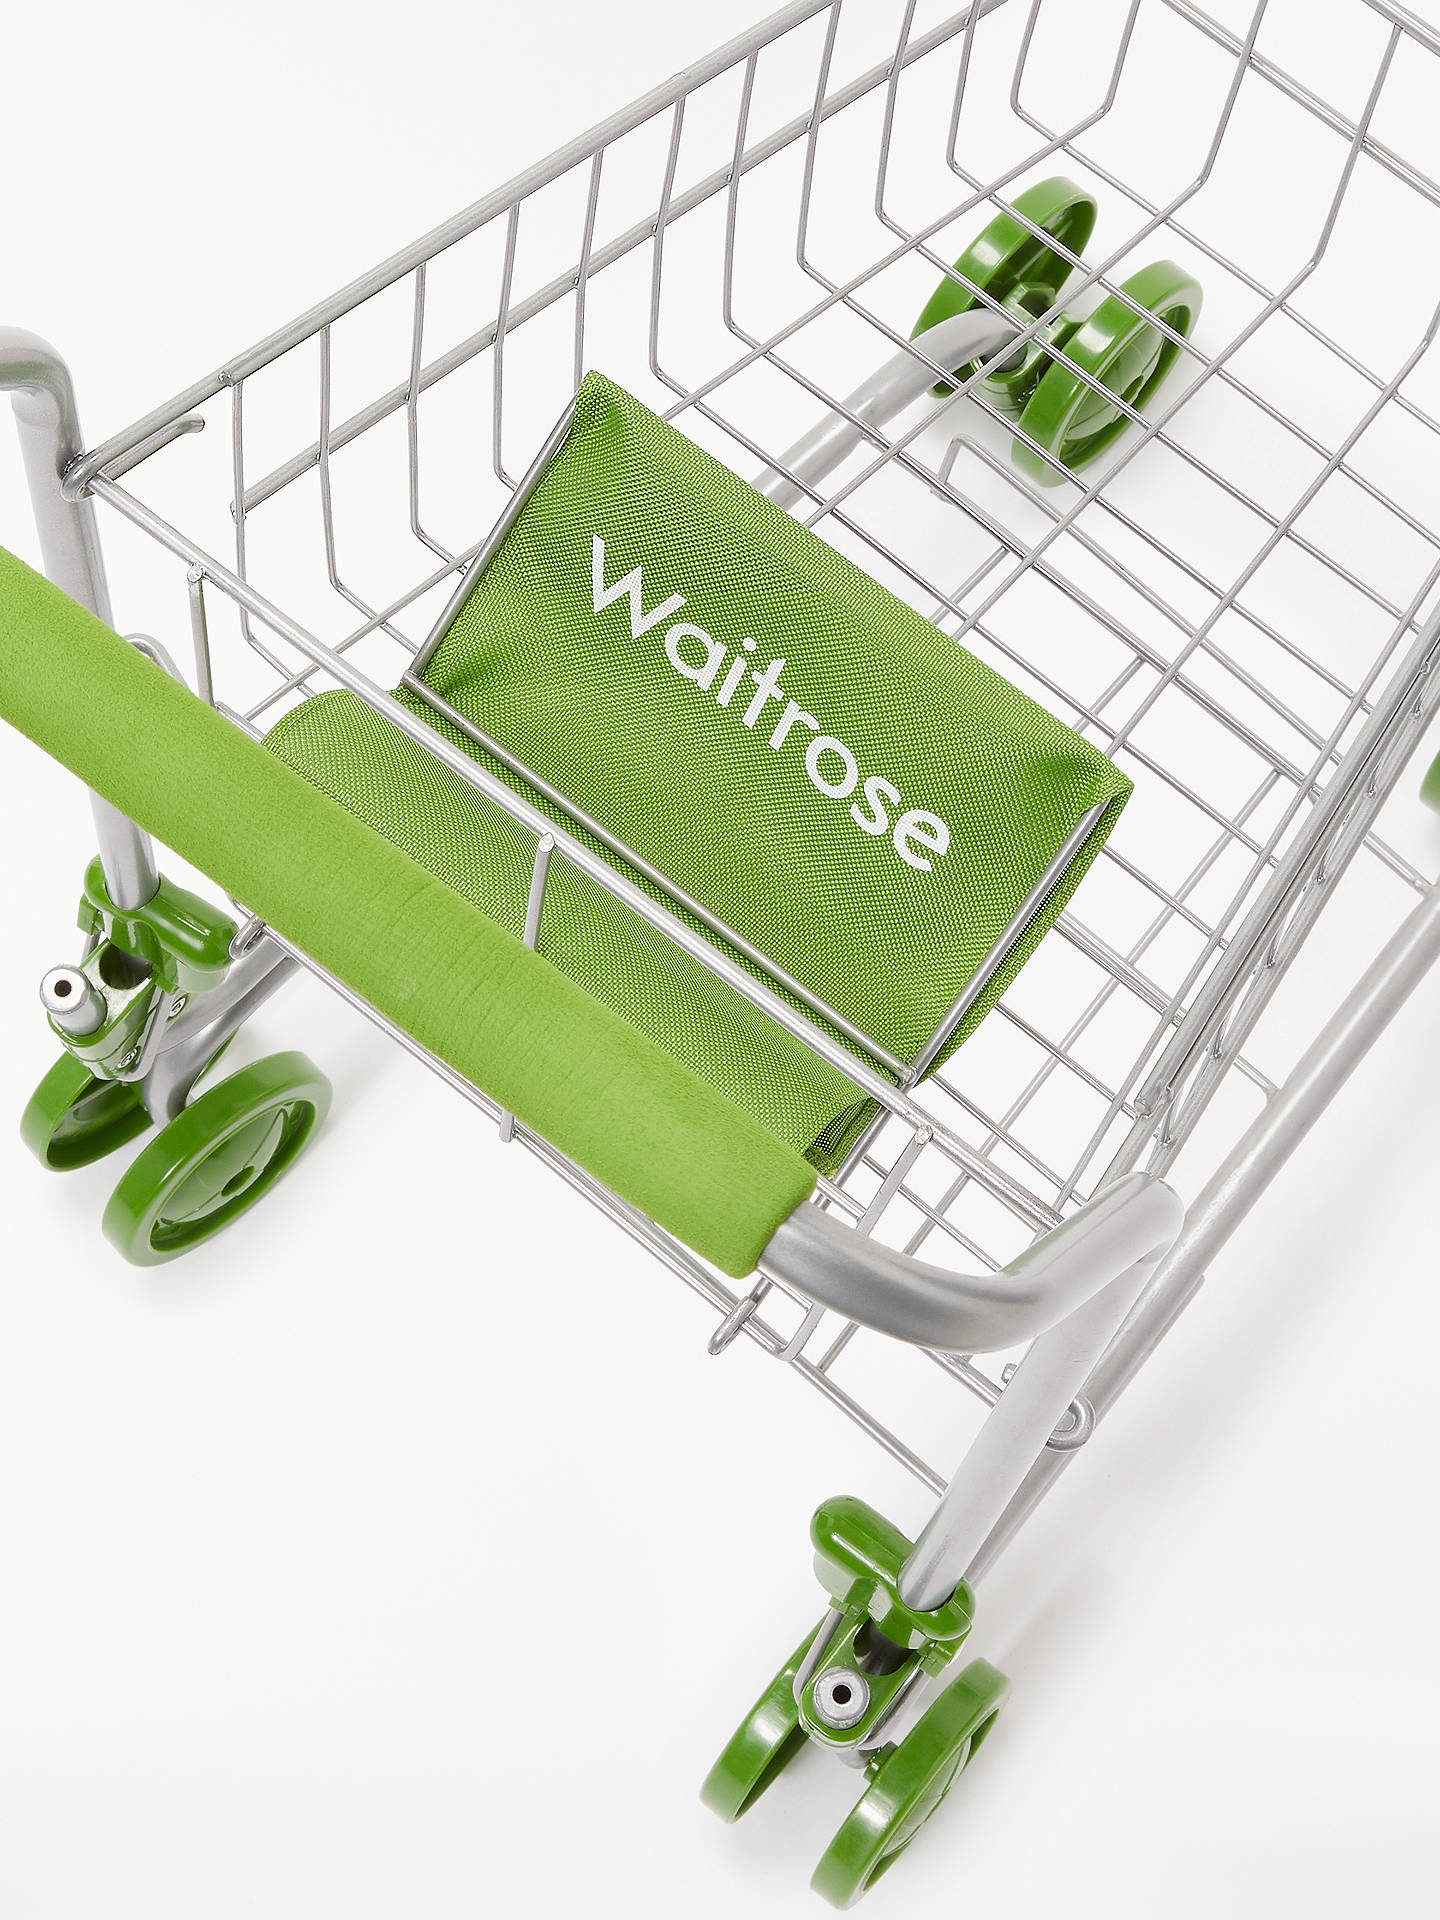 Buy John Lewis & Partners Toy Waitrose Shopping Trolley Online at johnlewis.com